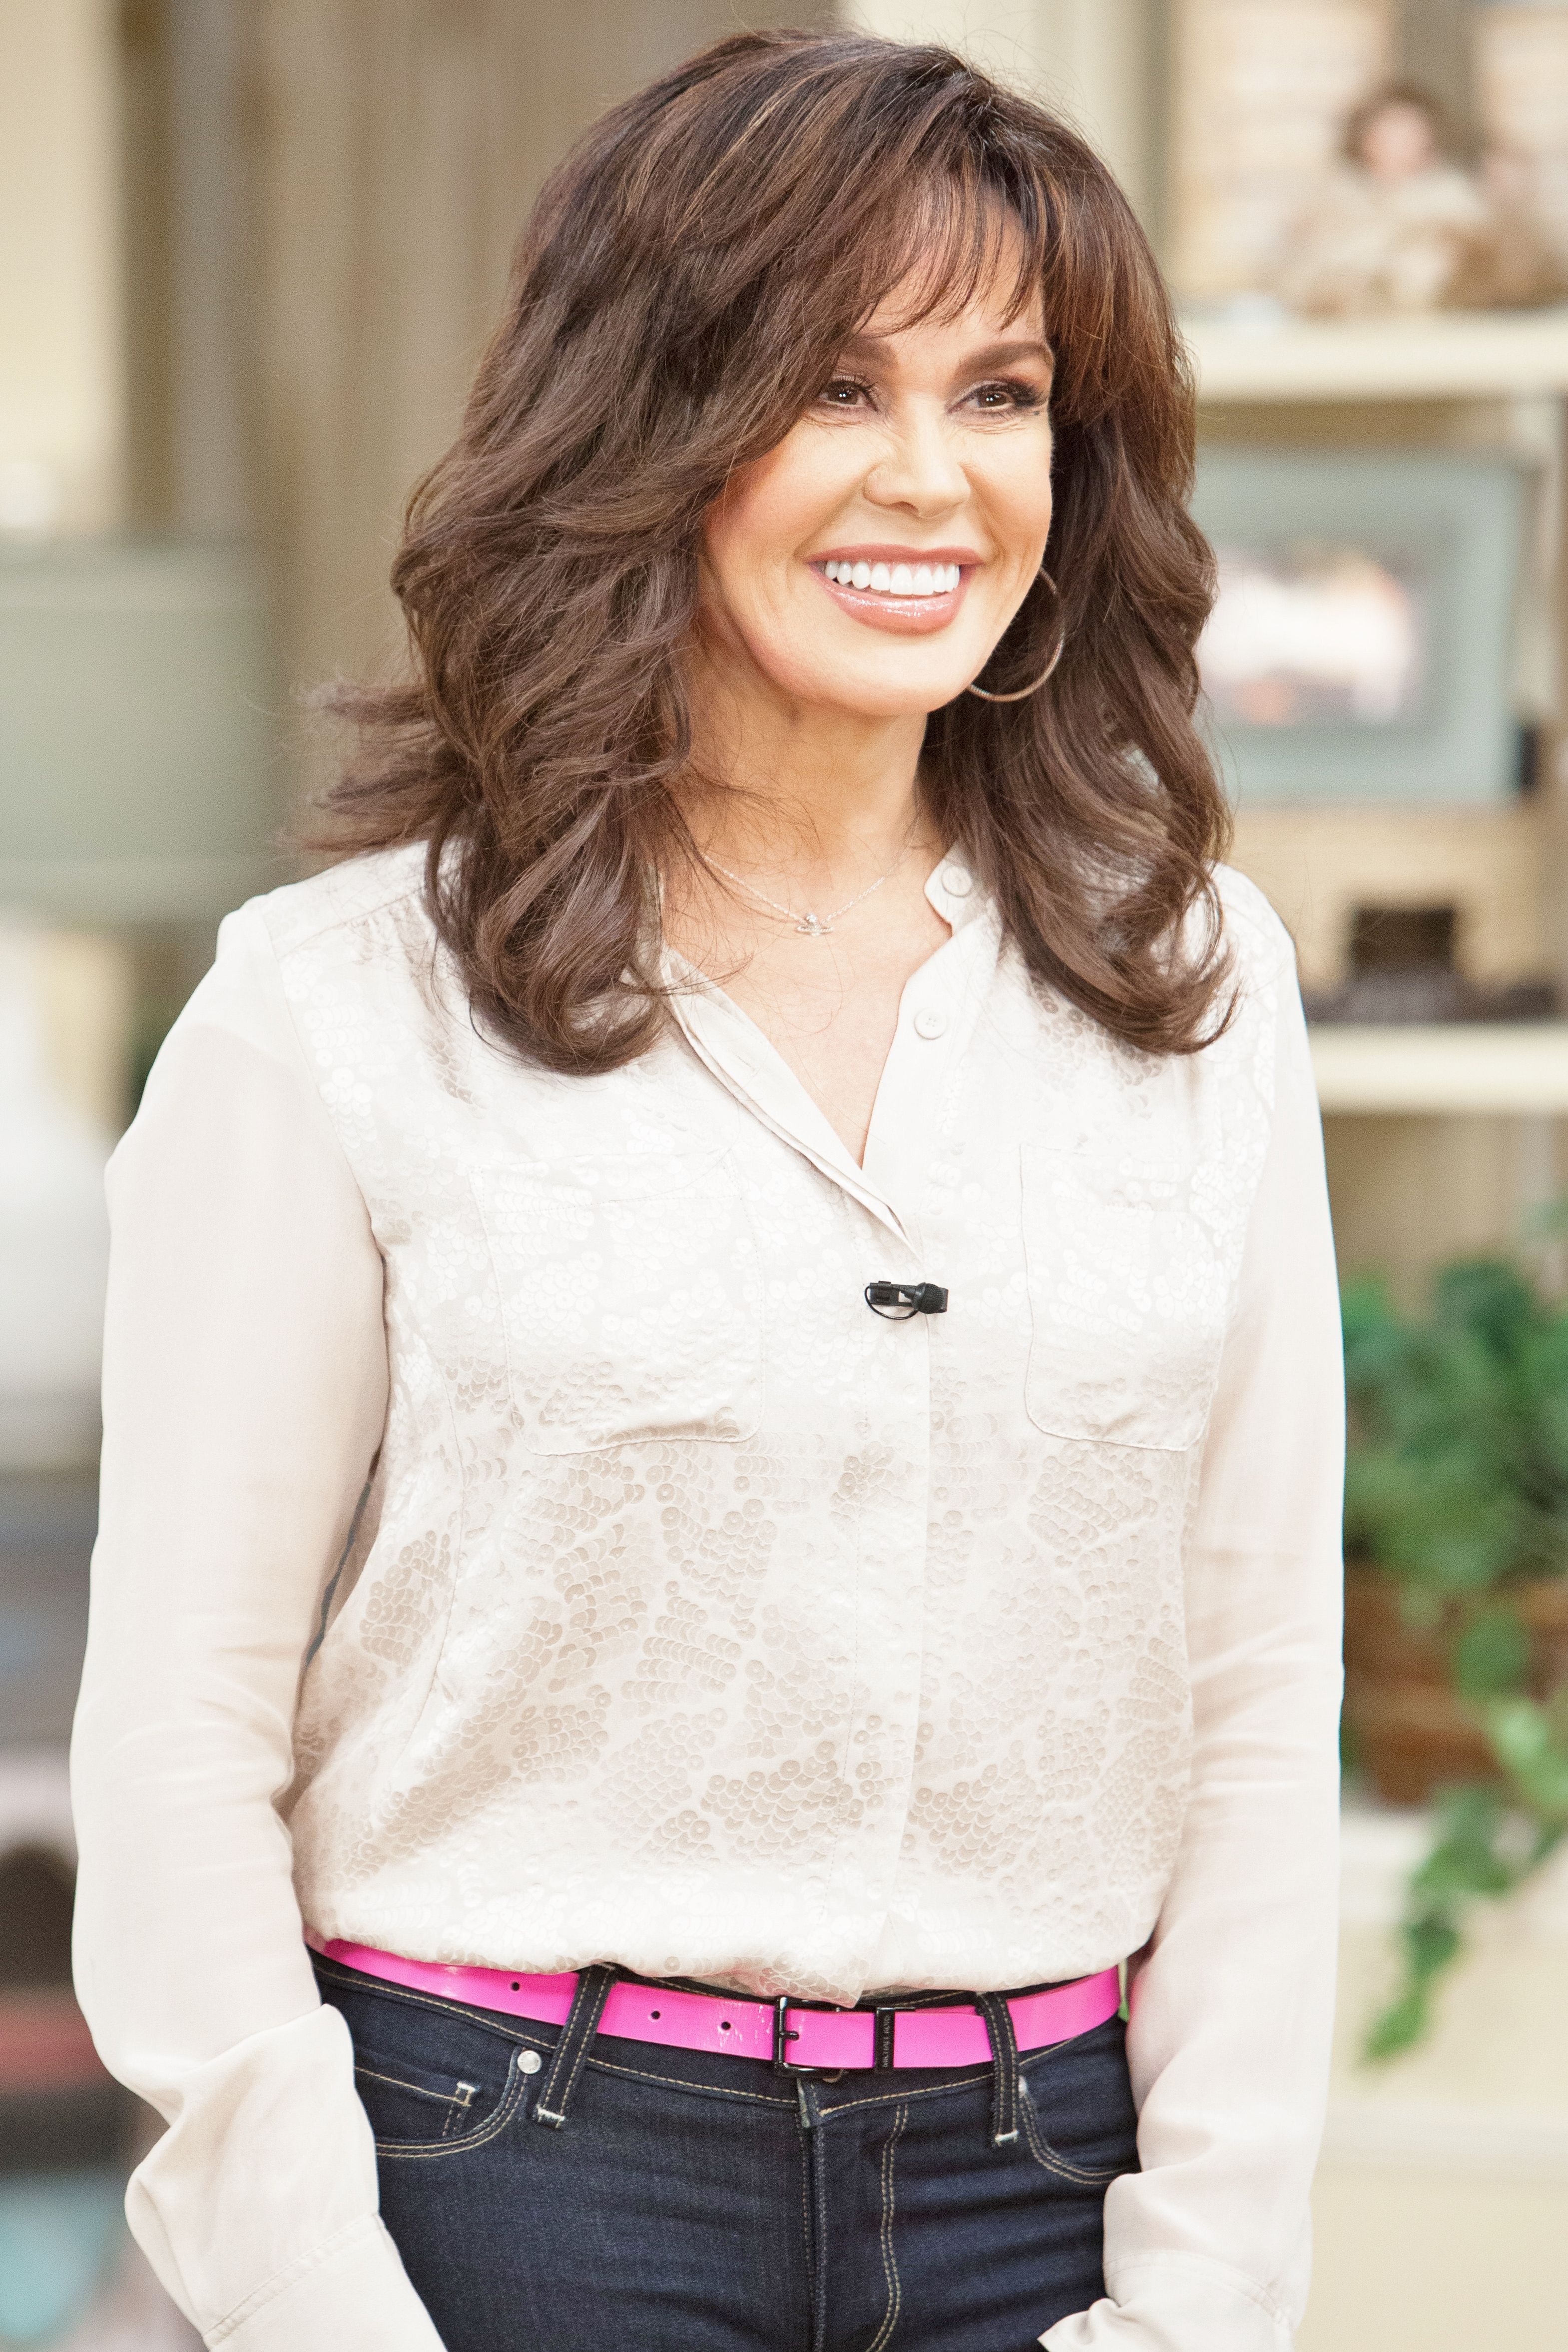 Marie Osmonds Talk Show on Hallmark | Marie Osmond | Pinterest ...